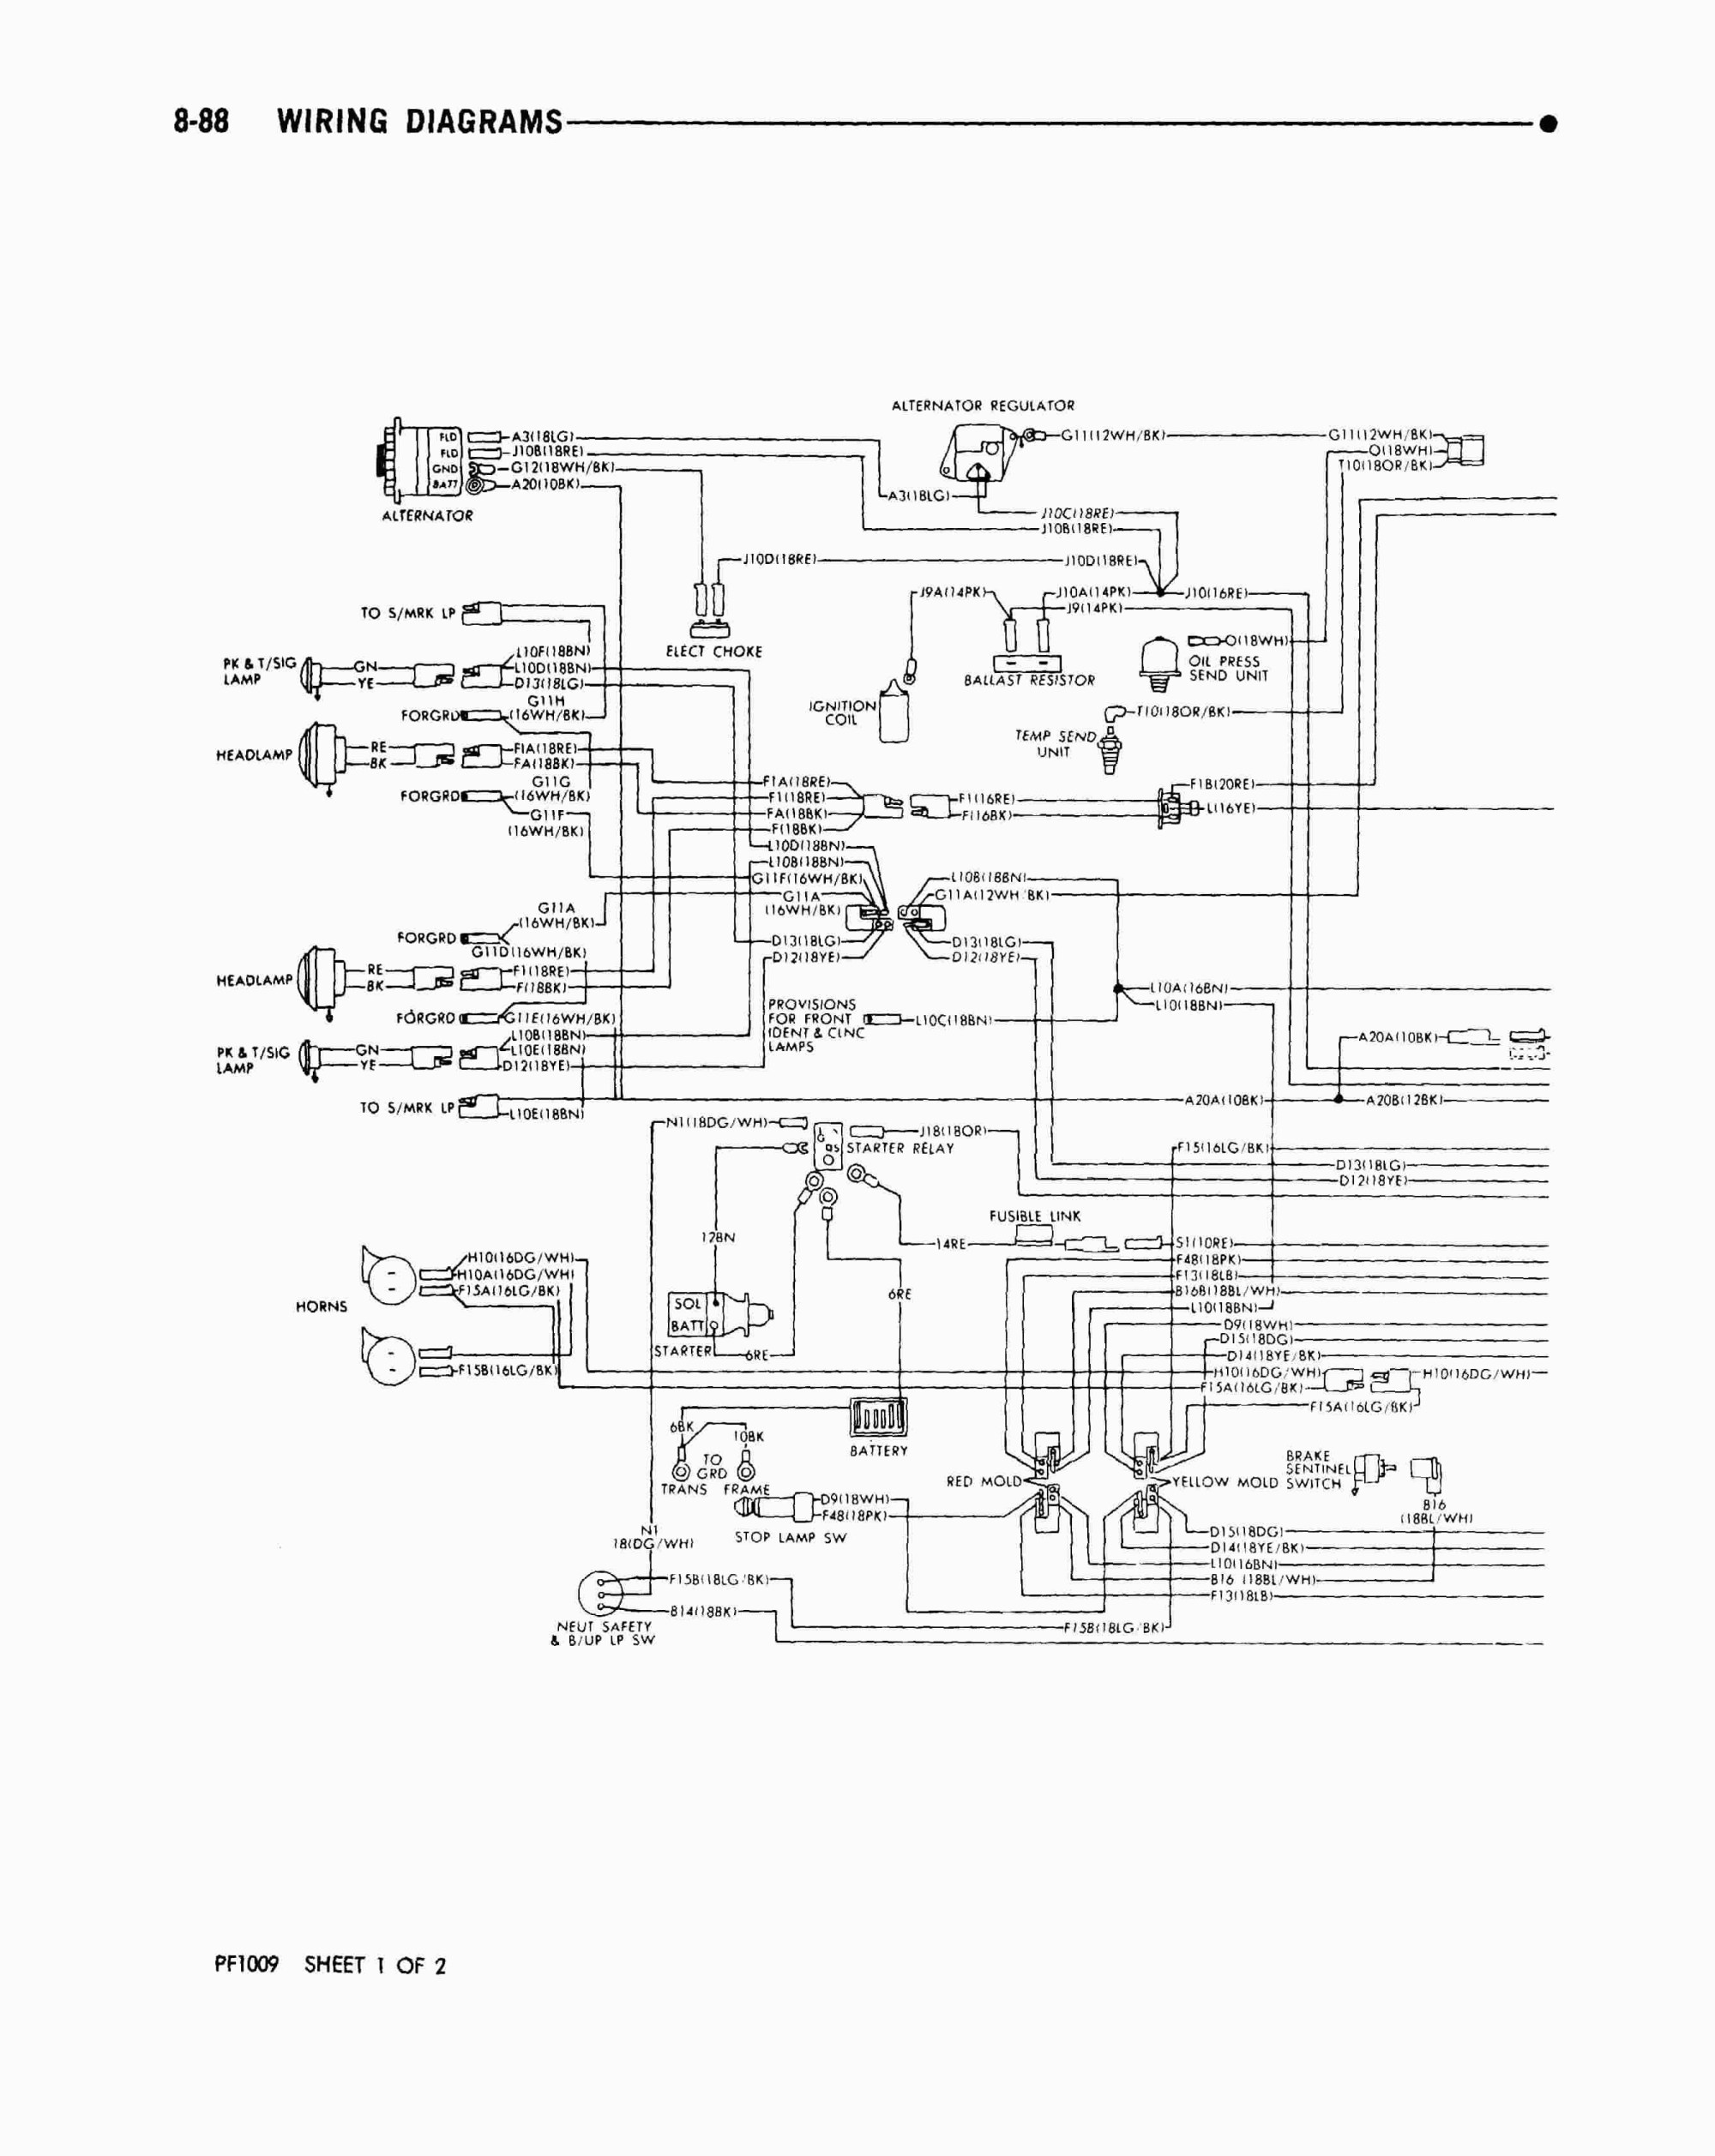 hight resolution of 2007 ford f53 fuse block diagram schematic wiring diagram2007 ford f53 fuse box diagram wiring diagram